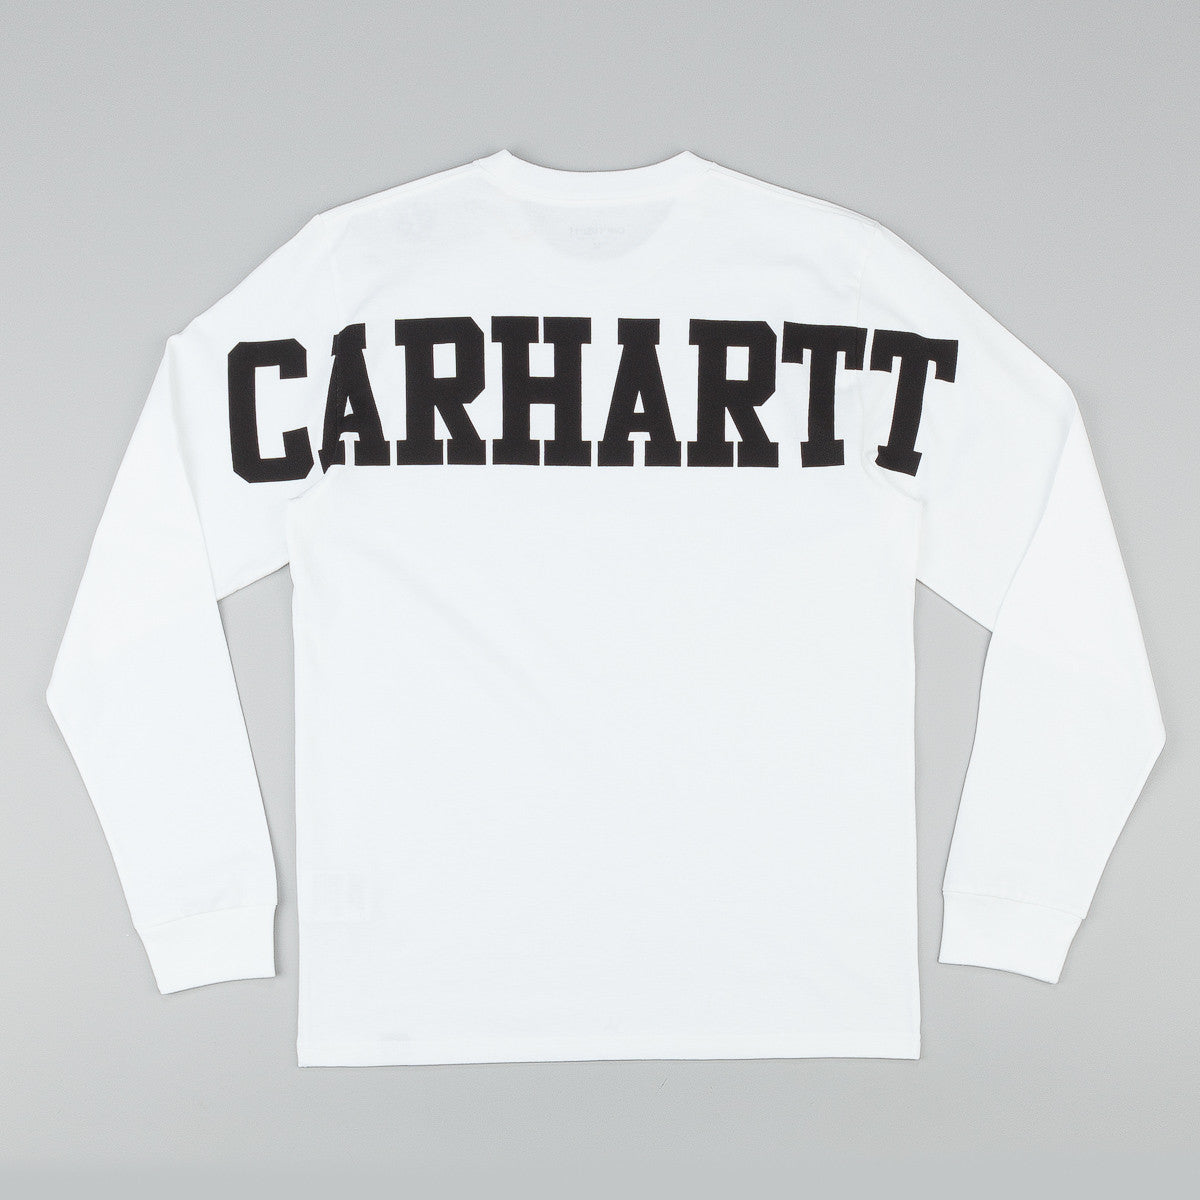 Carhartt Tony Long Sleeve T-Shirt - White / Black